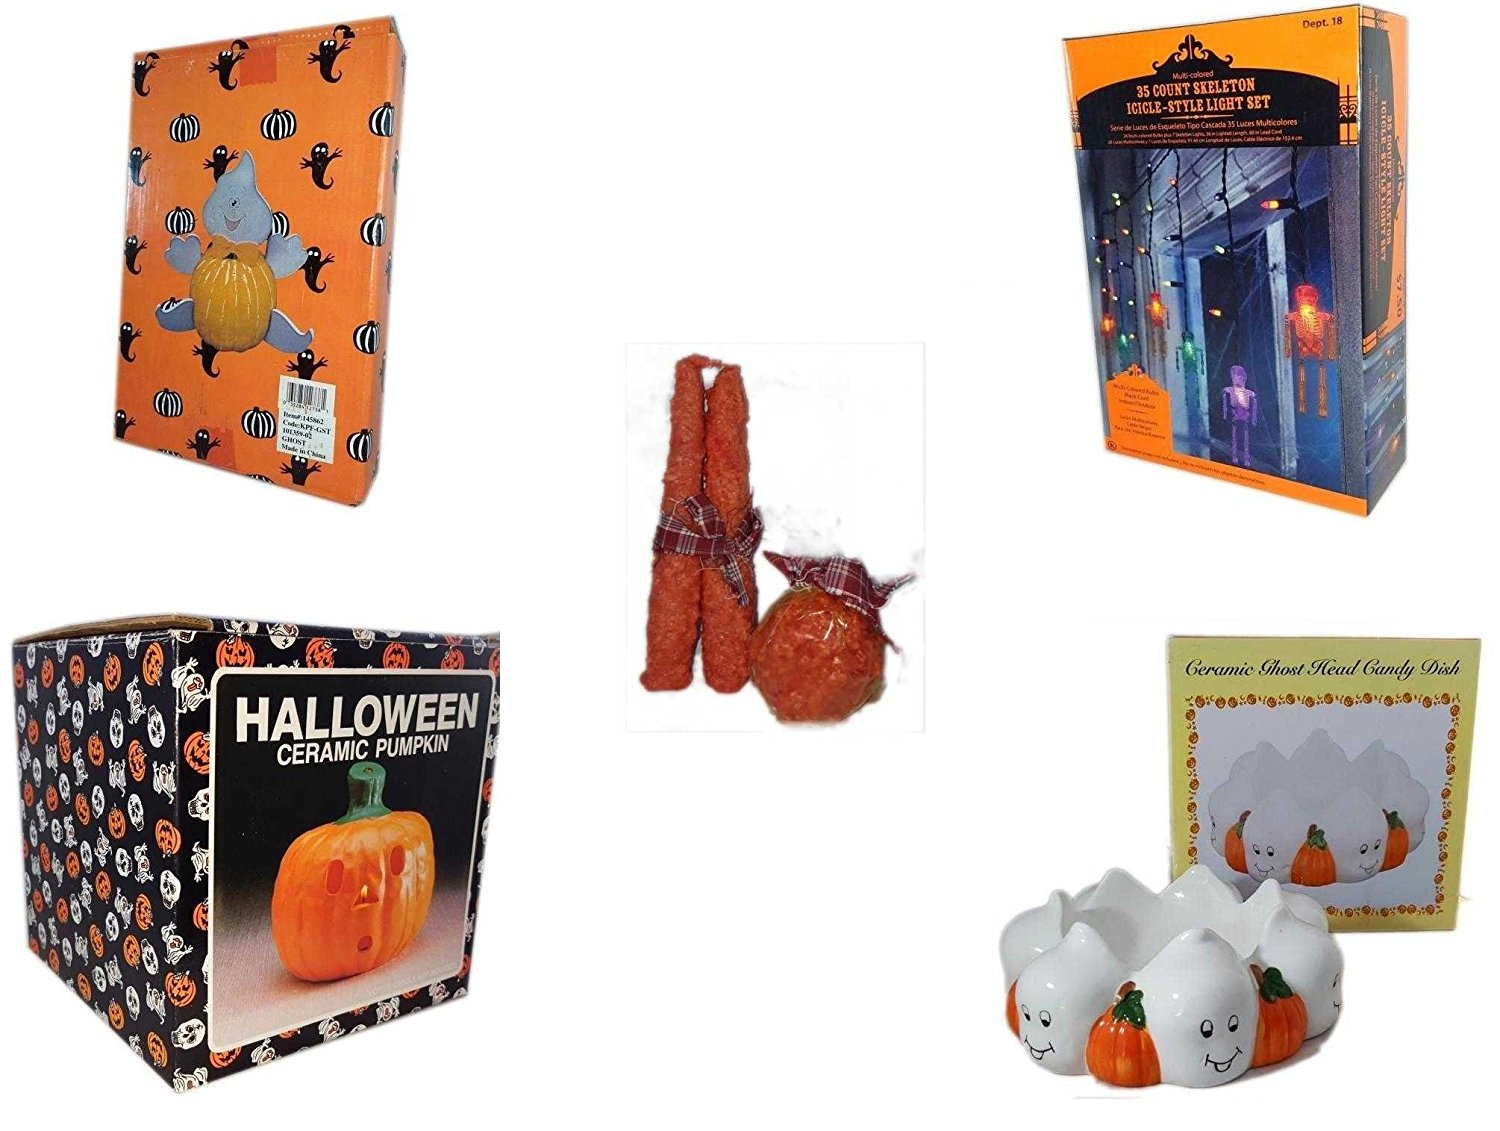 Halloween Fun Gift Bundle [5 piece] - Halloween Ghost Pumpkin Push In 5 Piece Head Arms Legs - 35 Count Skeleton Icicle-Style Light Set - Autumn Orange-spice Candles Set of 3 - Halloween Ceramic Pum